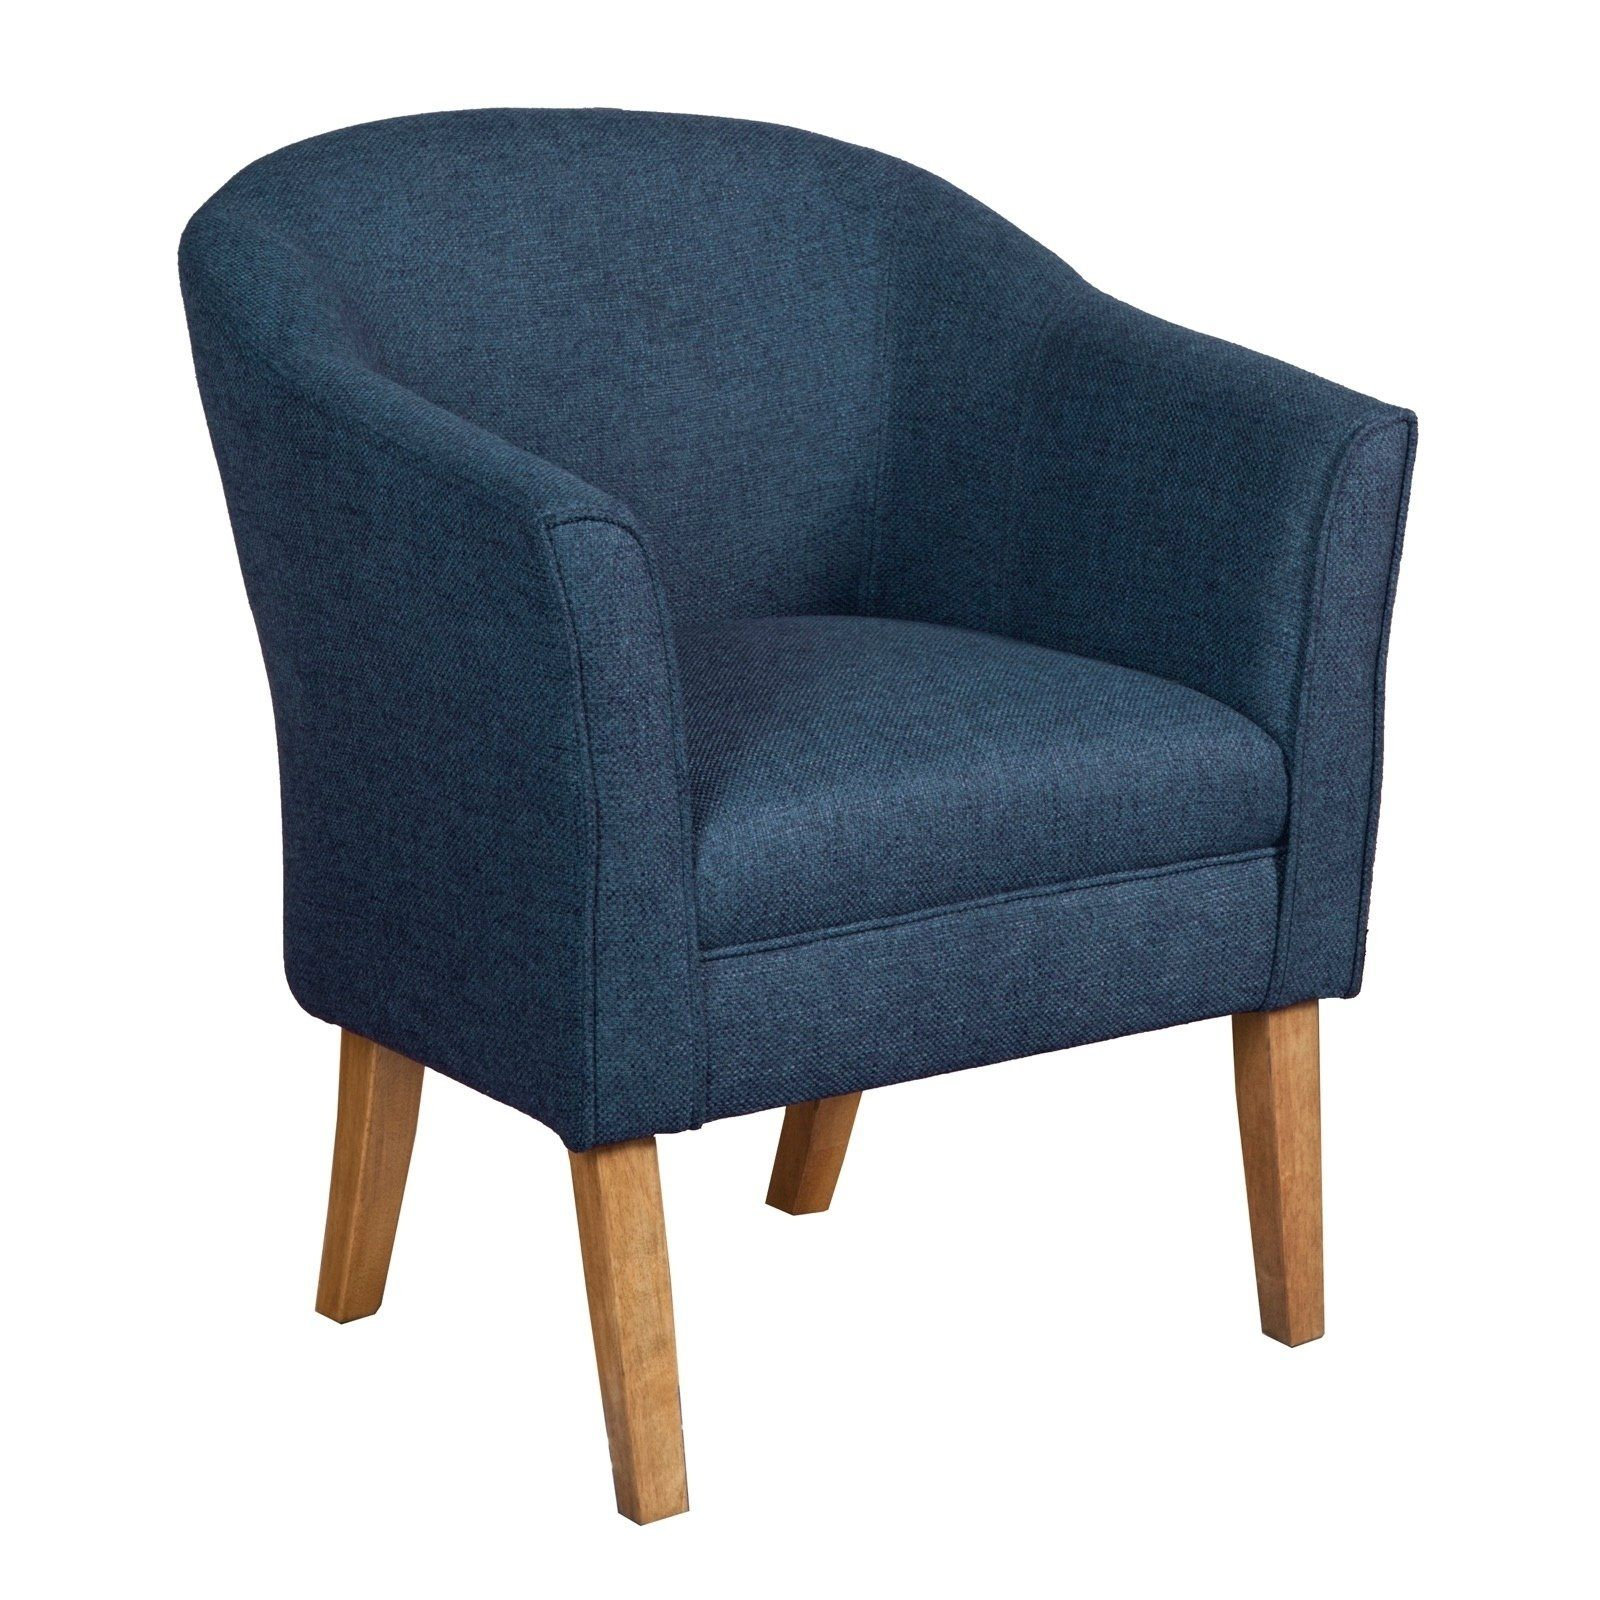 Best Fabric Upholstered Wooden Accent Chair With Curved Back 640 x 480